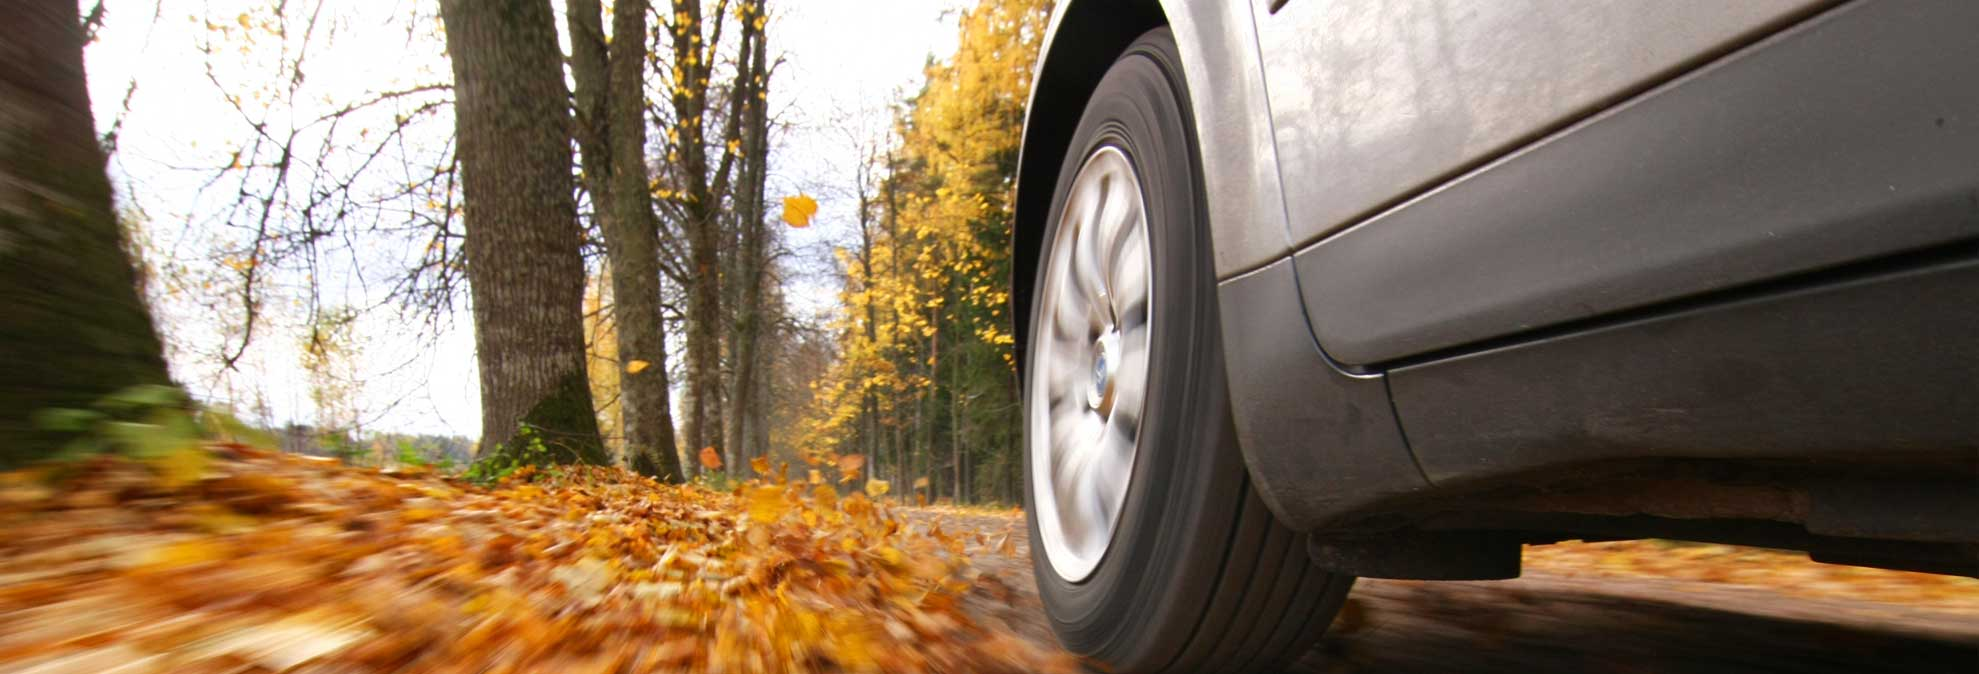 Fall Cleanup And Maintenance For Your Car Consumer Reports